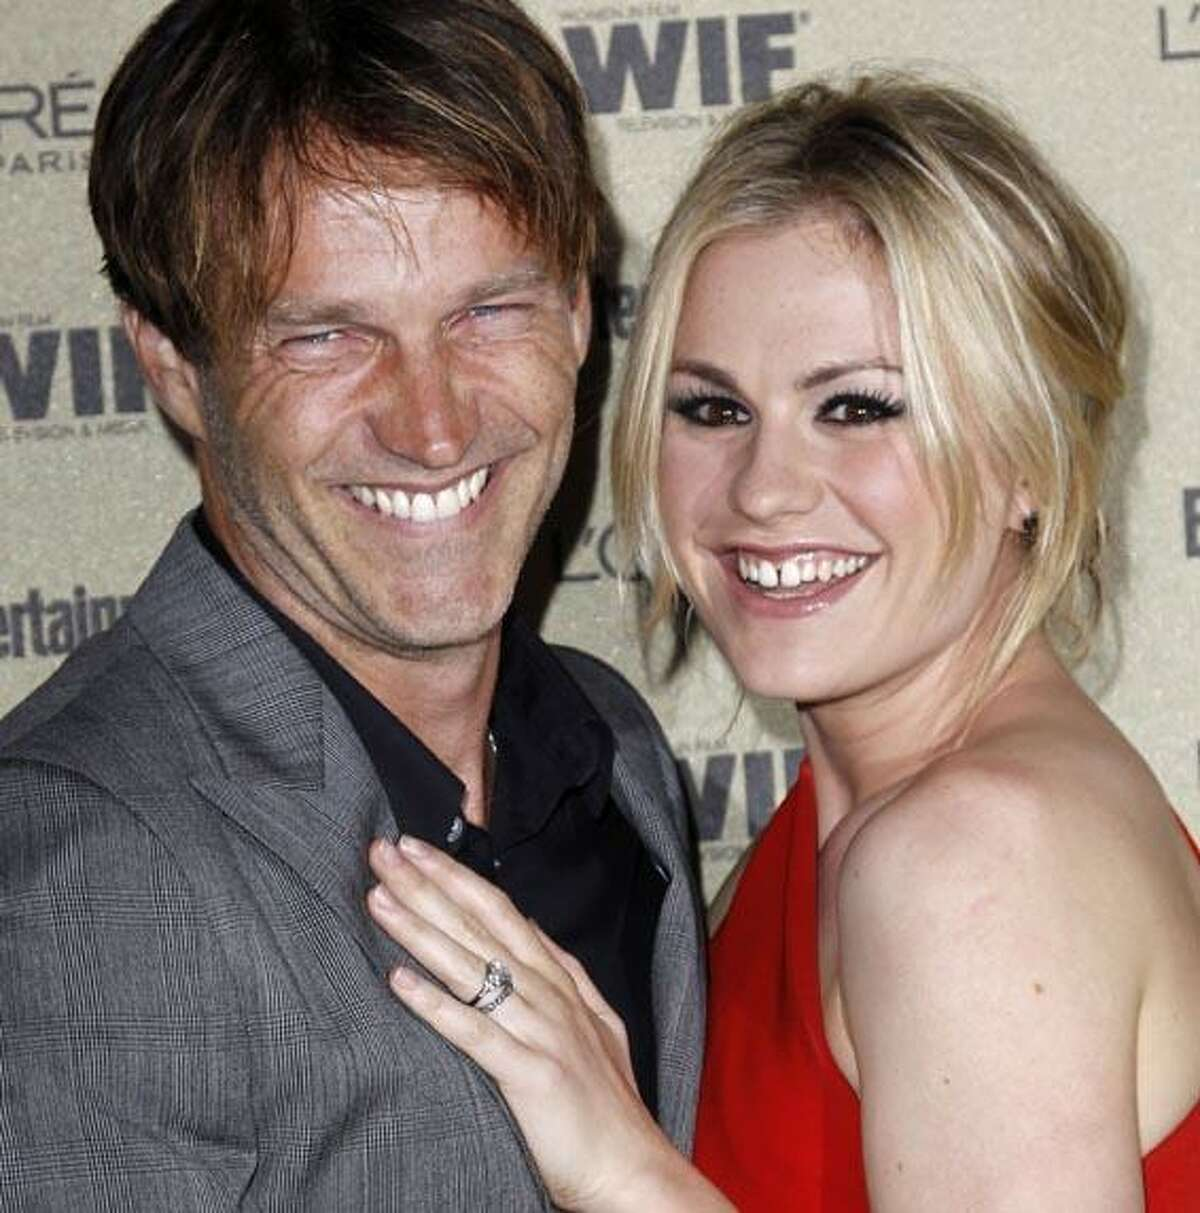 Anna Paquin, right, and Stephen Moyer arrive at the Entertainment Weekly and Women in Film Pre-Emmy Party in West Hollywood, Calif. on Friday, Aug. 27, 2010. (AP Photo/Matt Sayles)